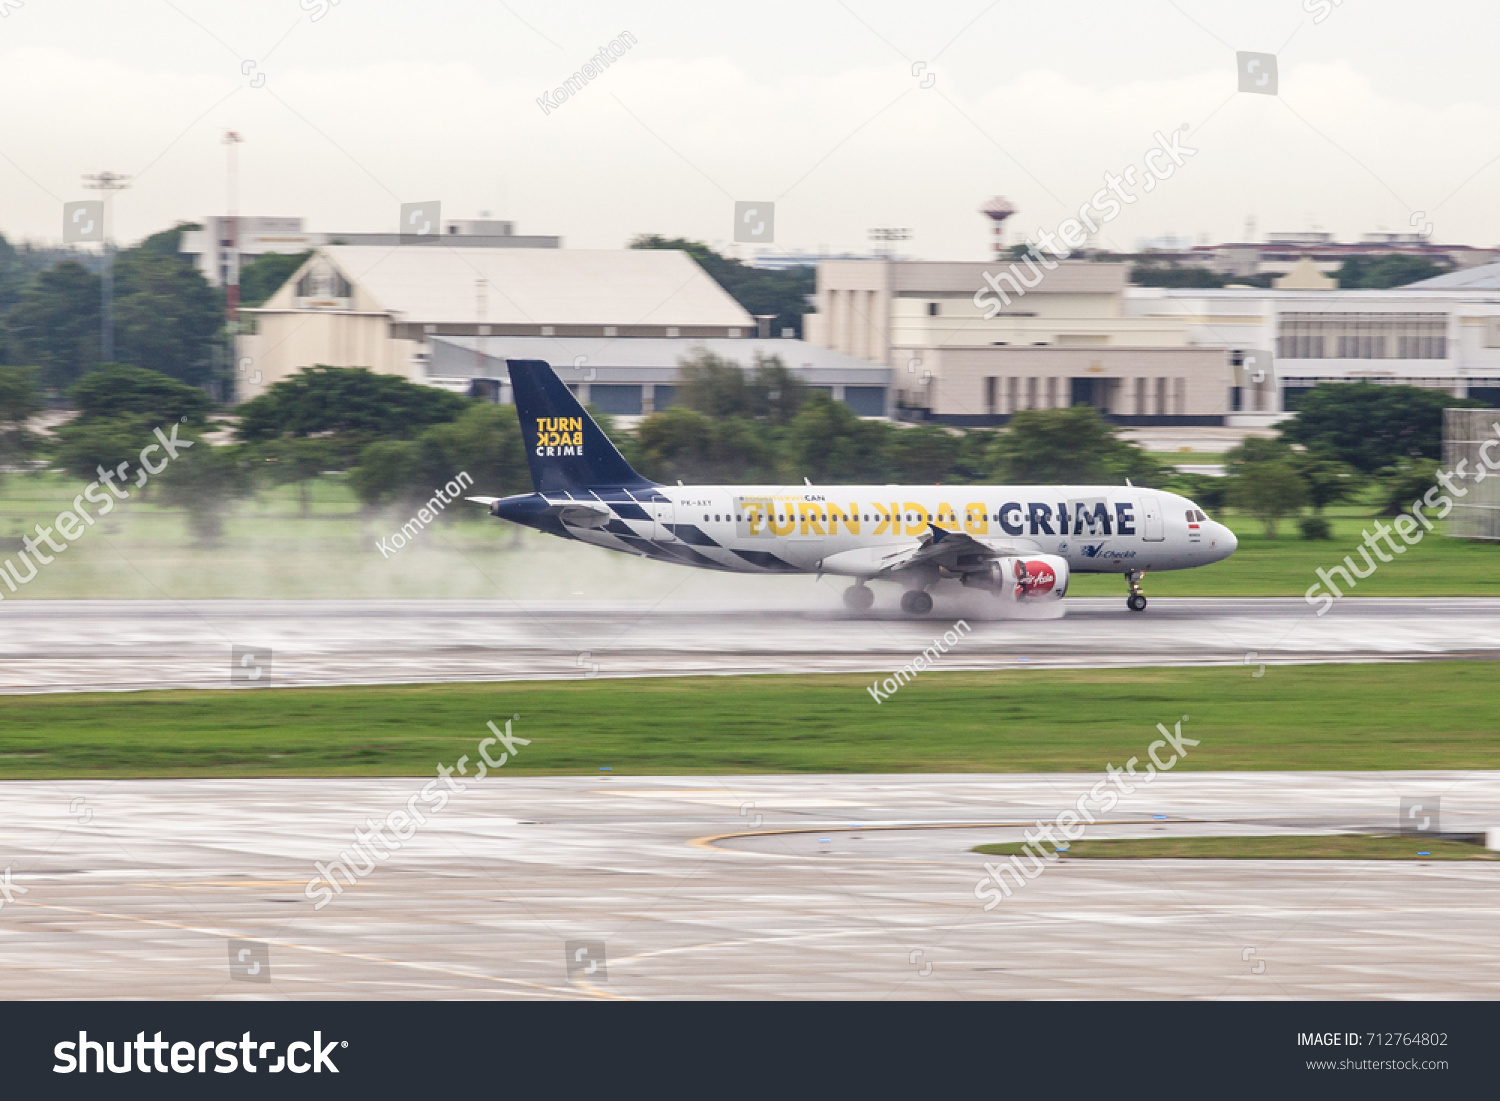 Bangkok Thailand 100917 Airasia Airbus A 320 Stock Photo Edit Now Jakarta Package 10 09 17 With A320 Turn Back Crime Livery